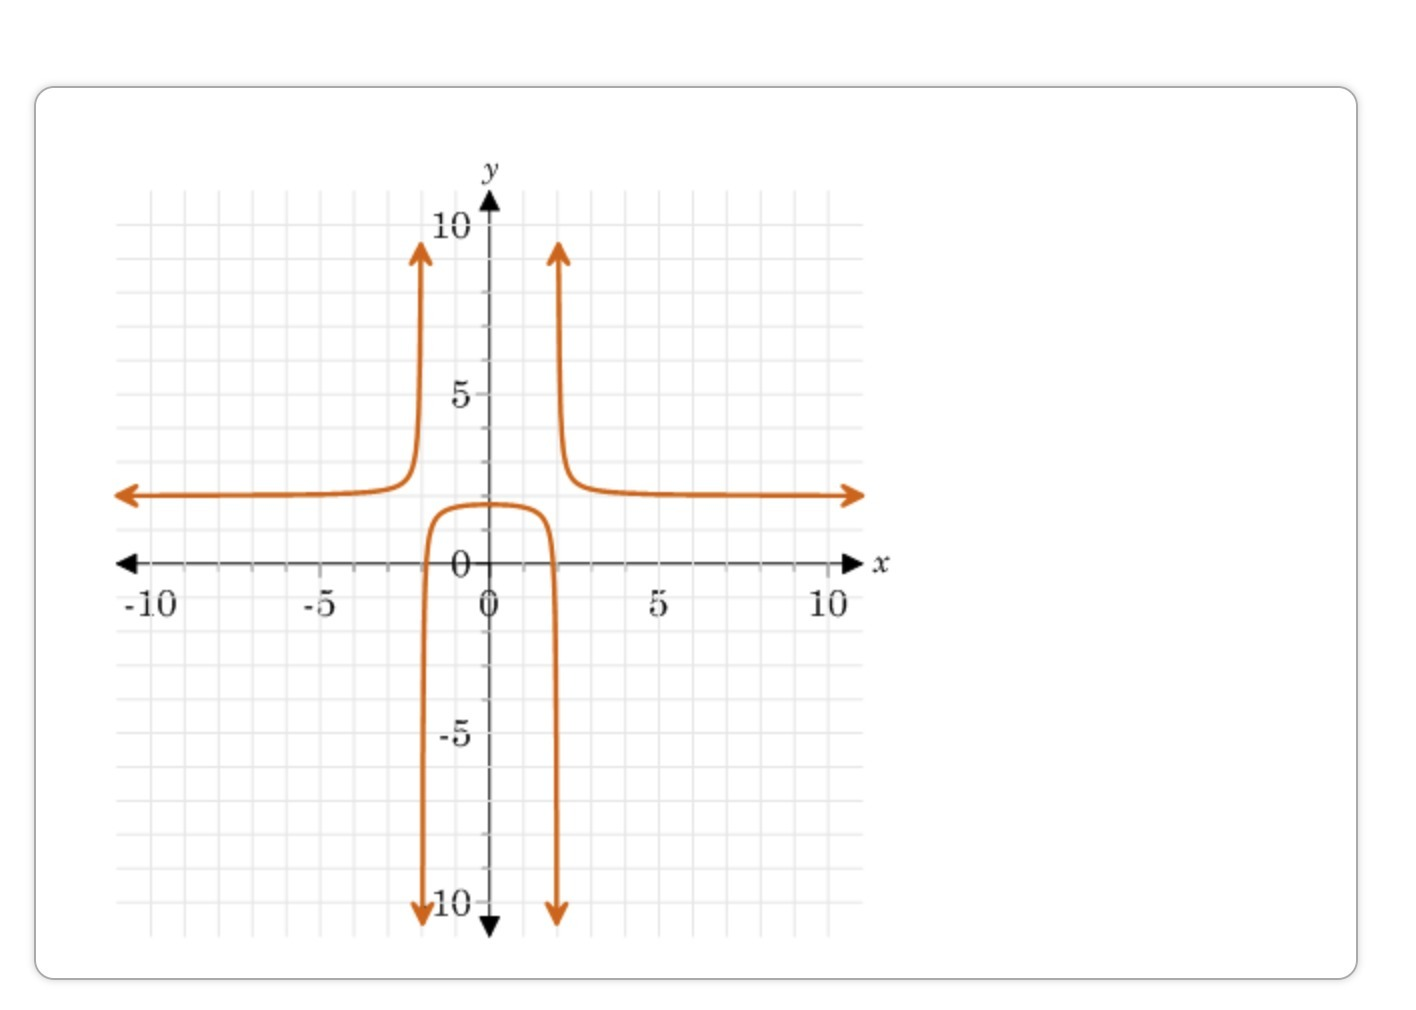 Identify All Of The Asymptotes For The Graphed Function